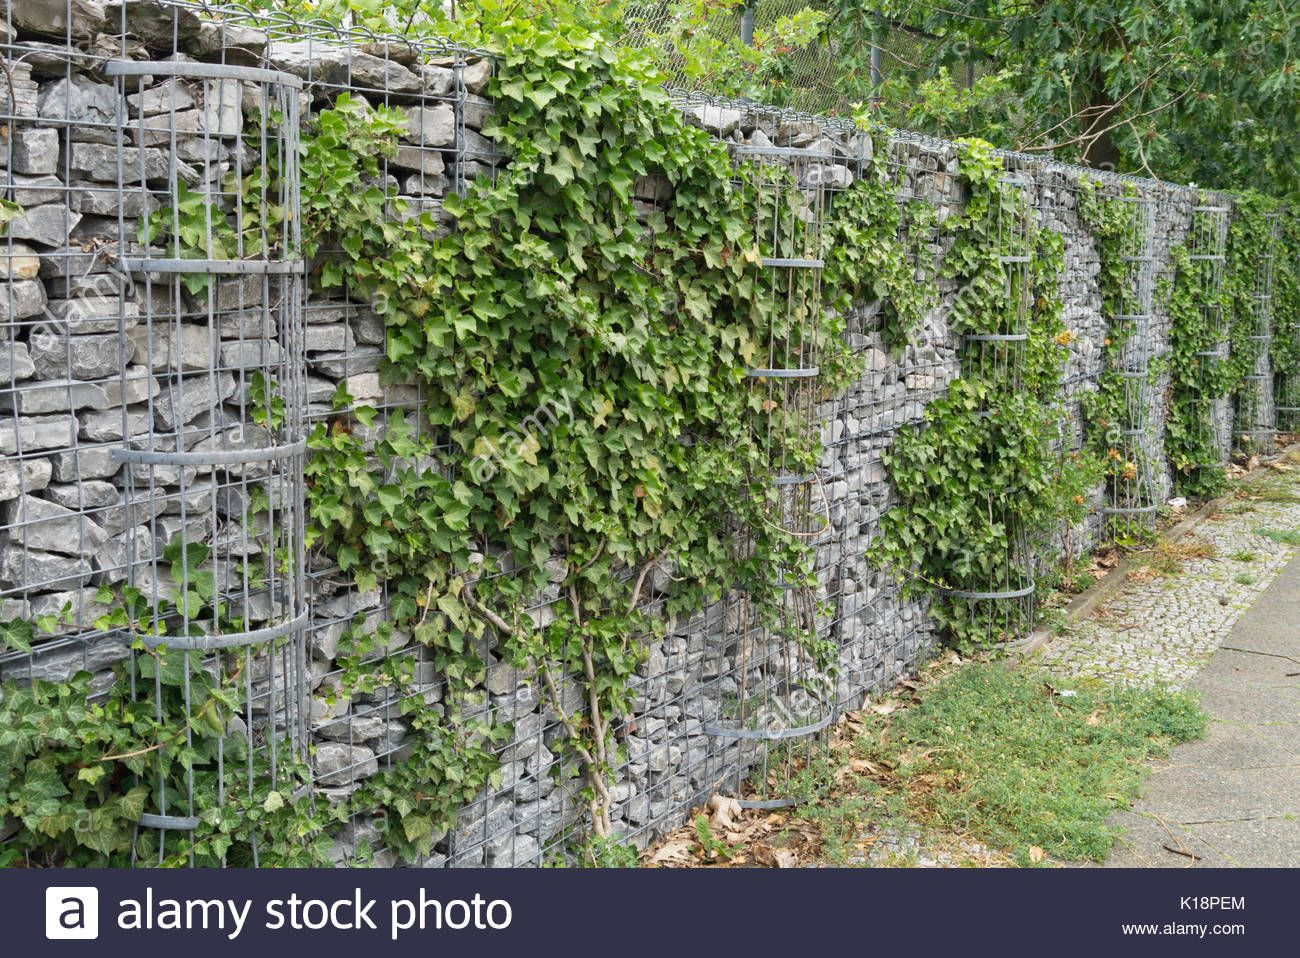 Download this stock image Common ivy (Hedera helix) on a